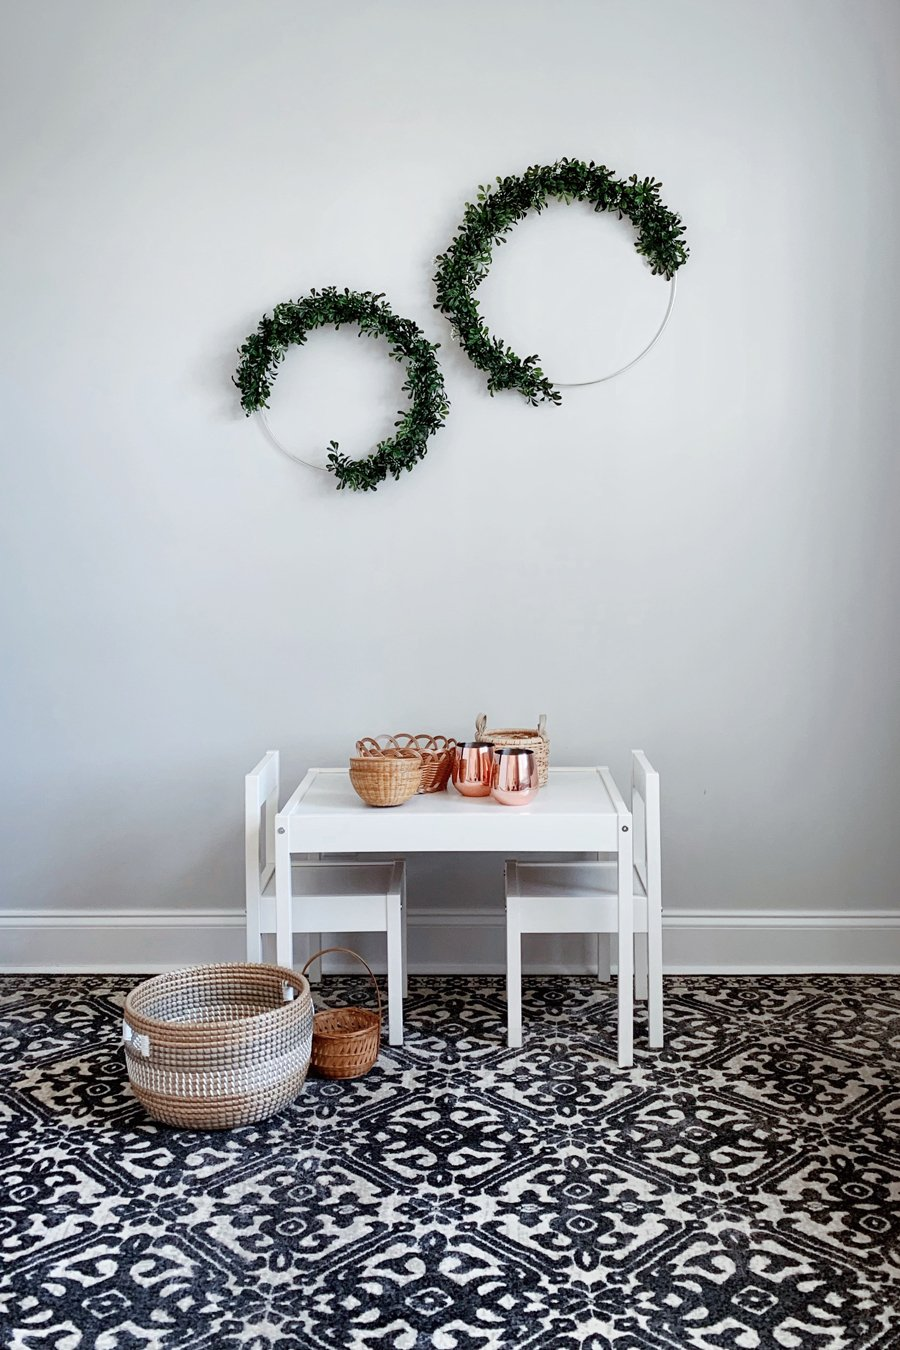 Baby Shower (or Birthday Party) Decor that Can Transition to the Nursery